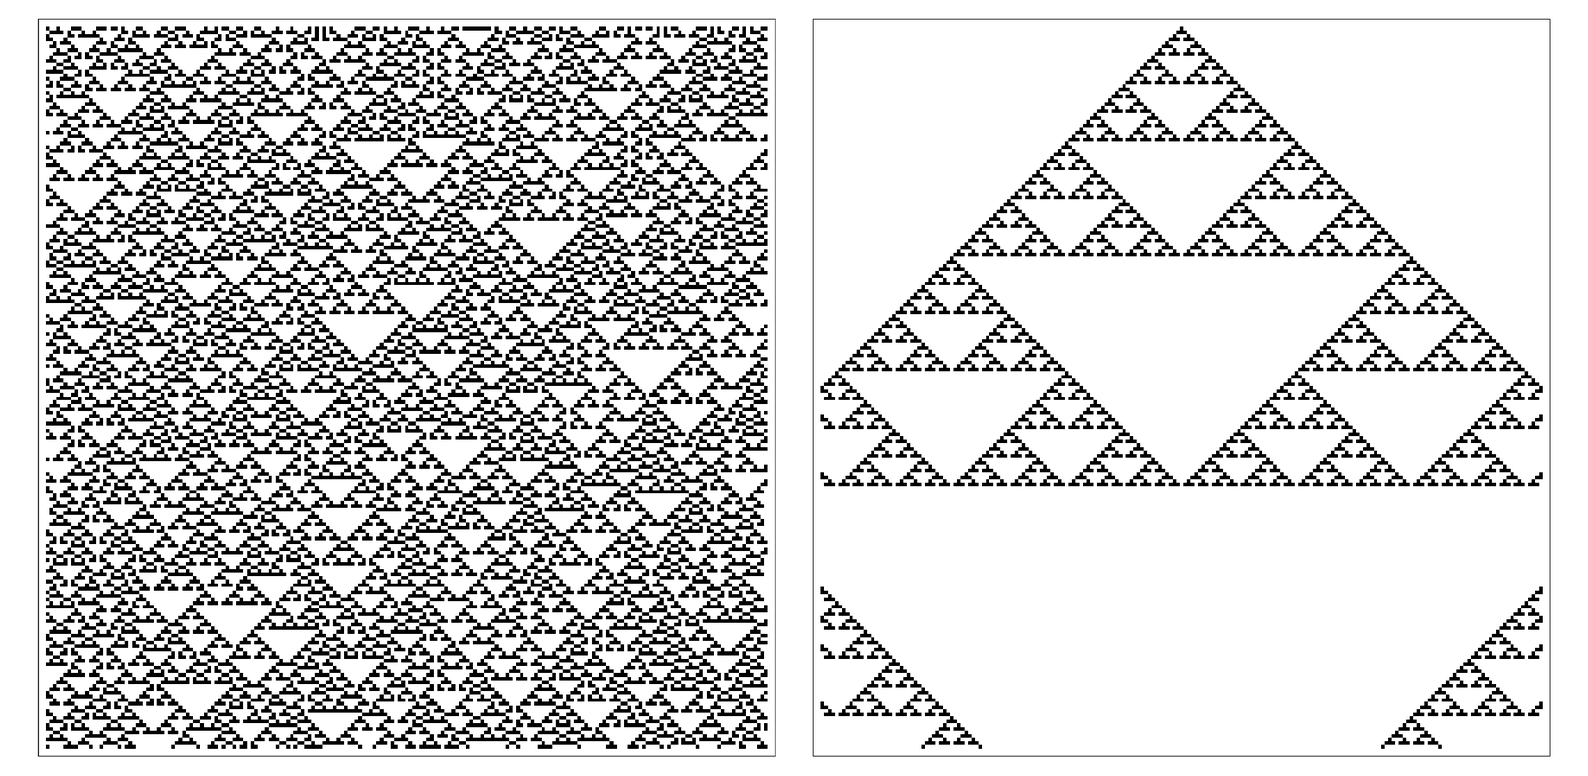 Patterns produced by rule 22